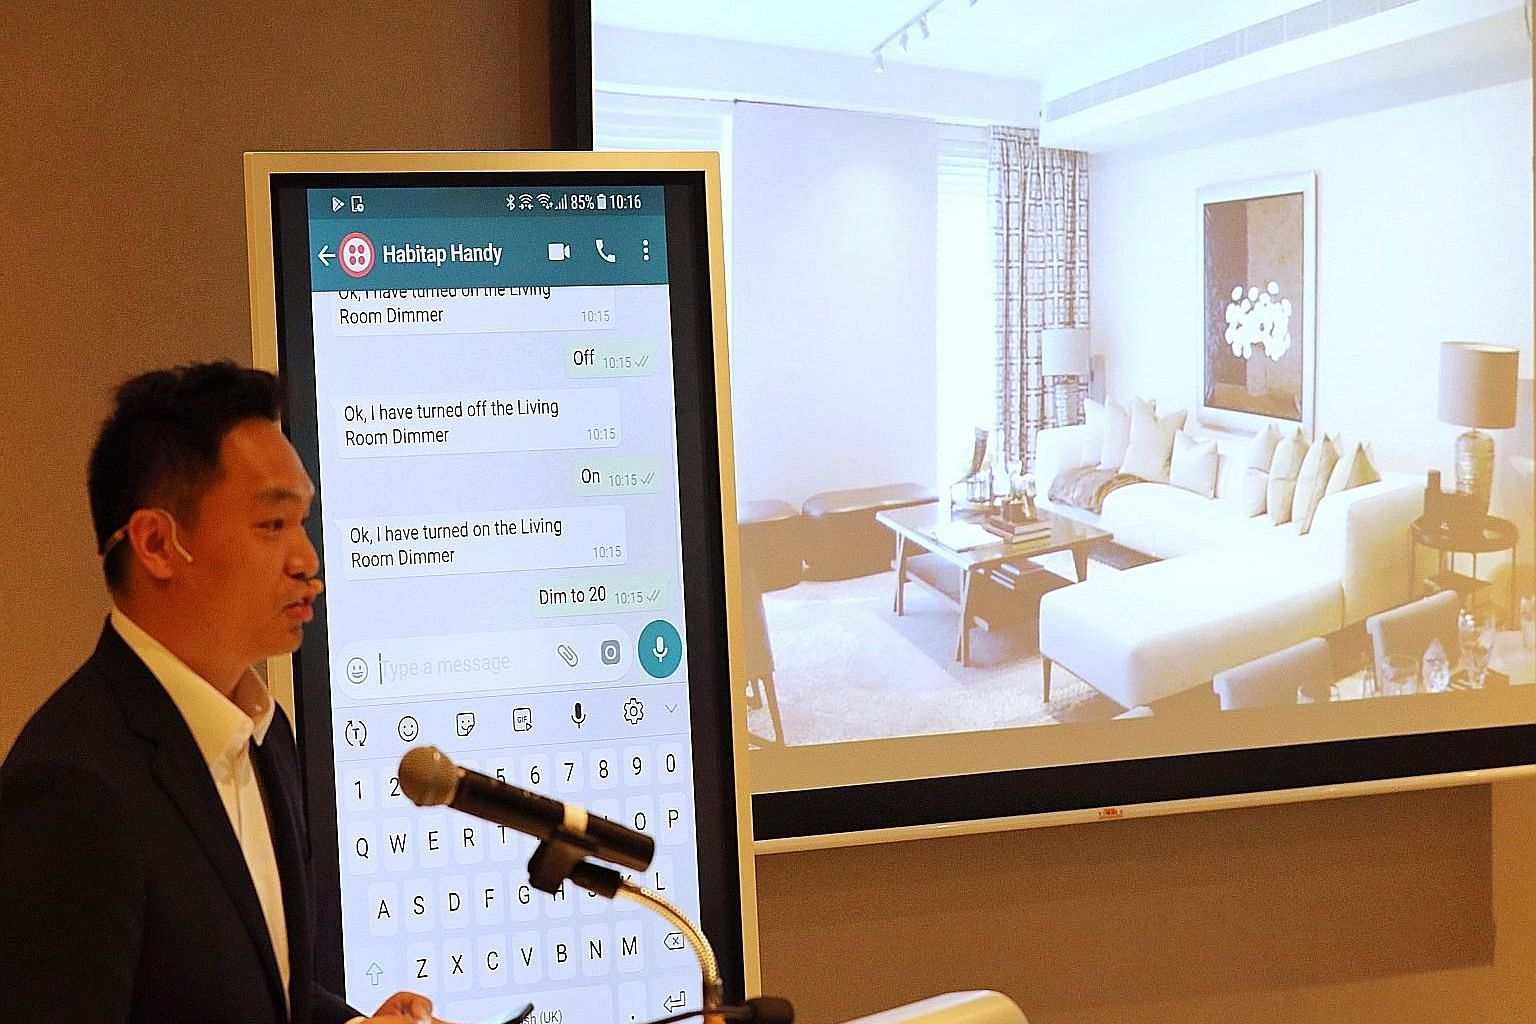 Mr Franklin Tang, chief executive of smart living platform developer Habitap, demonstrates how the Habitap Handy assistant can understand informally written text and ask follow-up questions to find out more about a user's request or instruction.